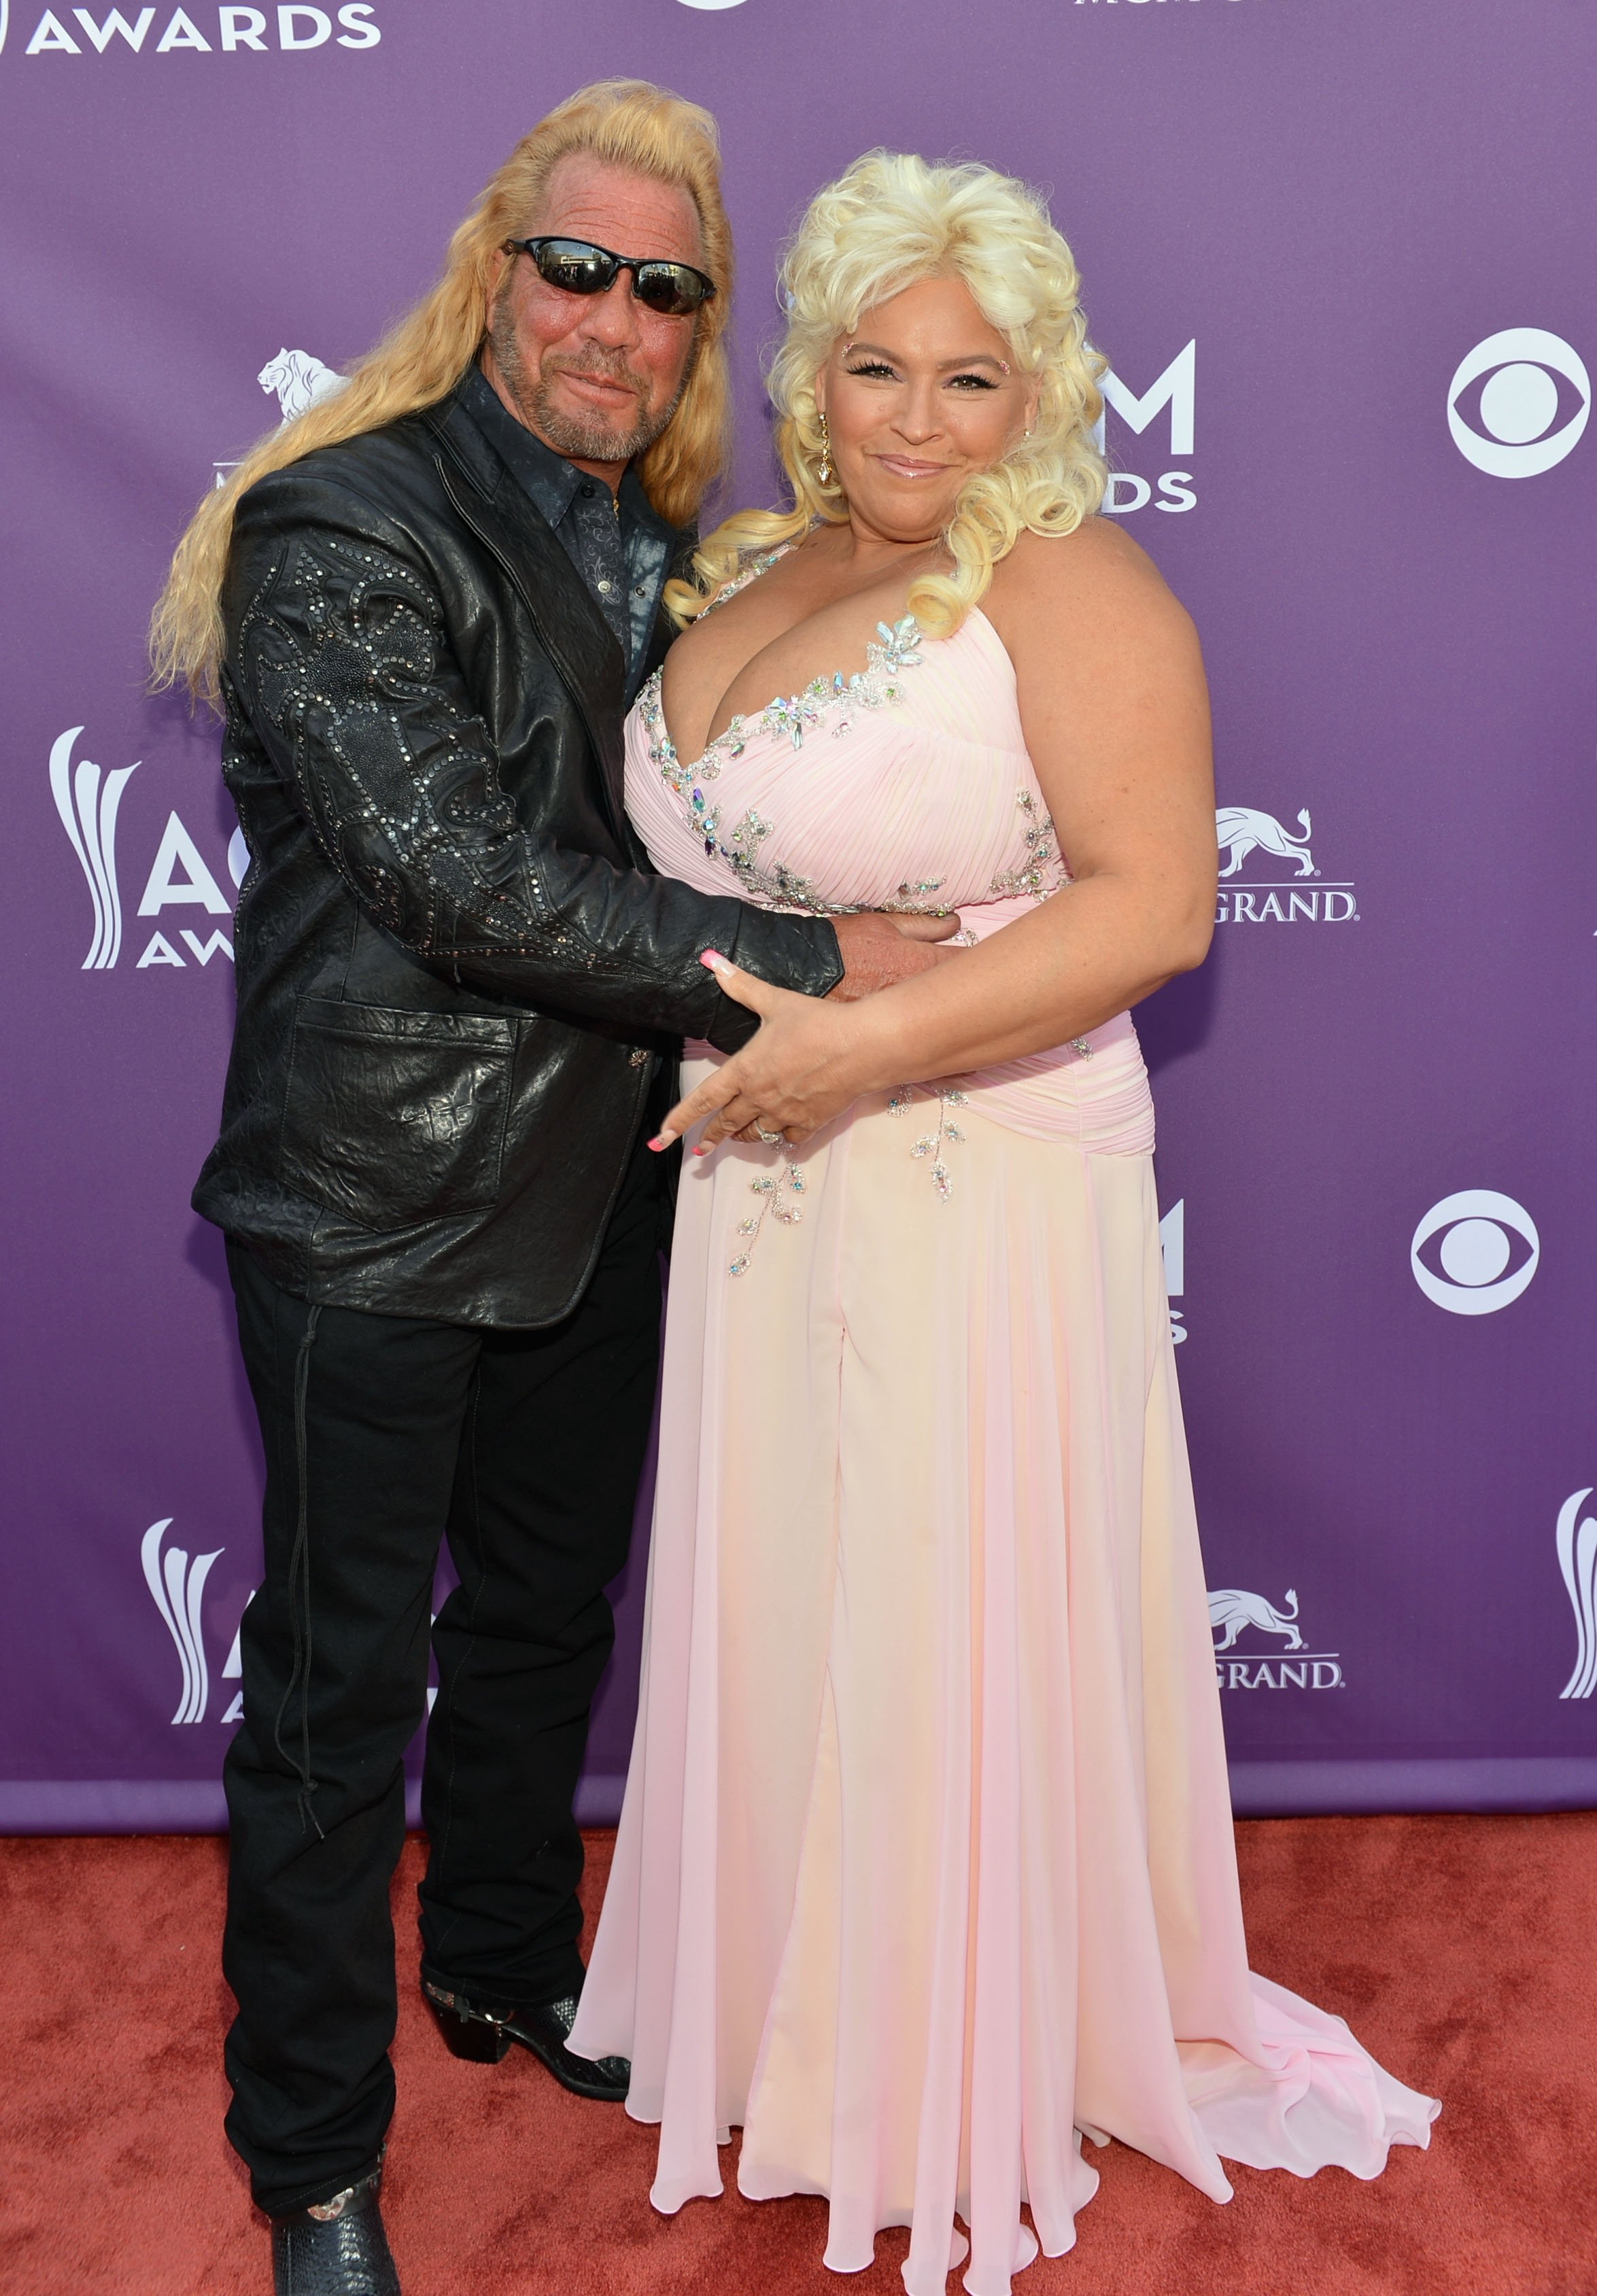 """Duane """"Dog"""" Chapman and Beth Smith attend the 48th Annual Academy of Country Music Awards at the MGM Grand Garden Arena on April 7, 2013 in Las Vegas, Nevada   Photo: Getty Images"""